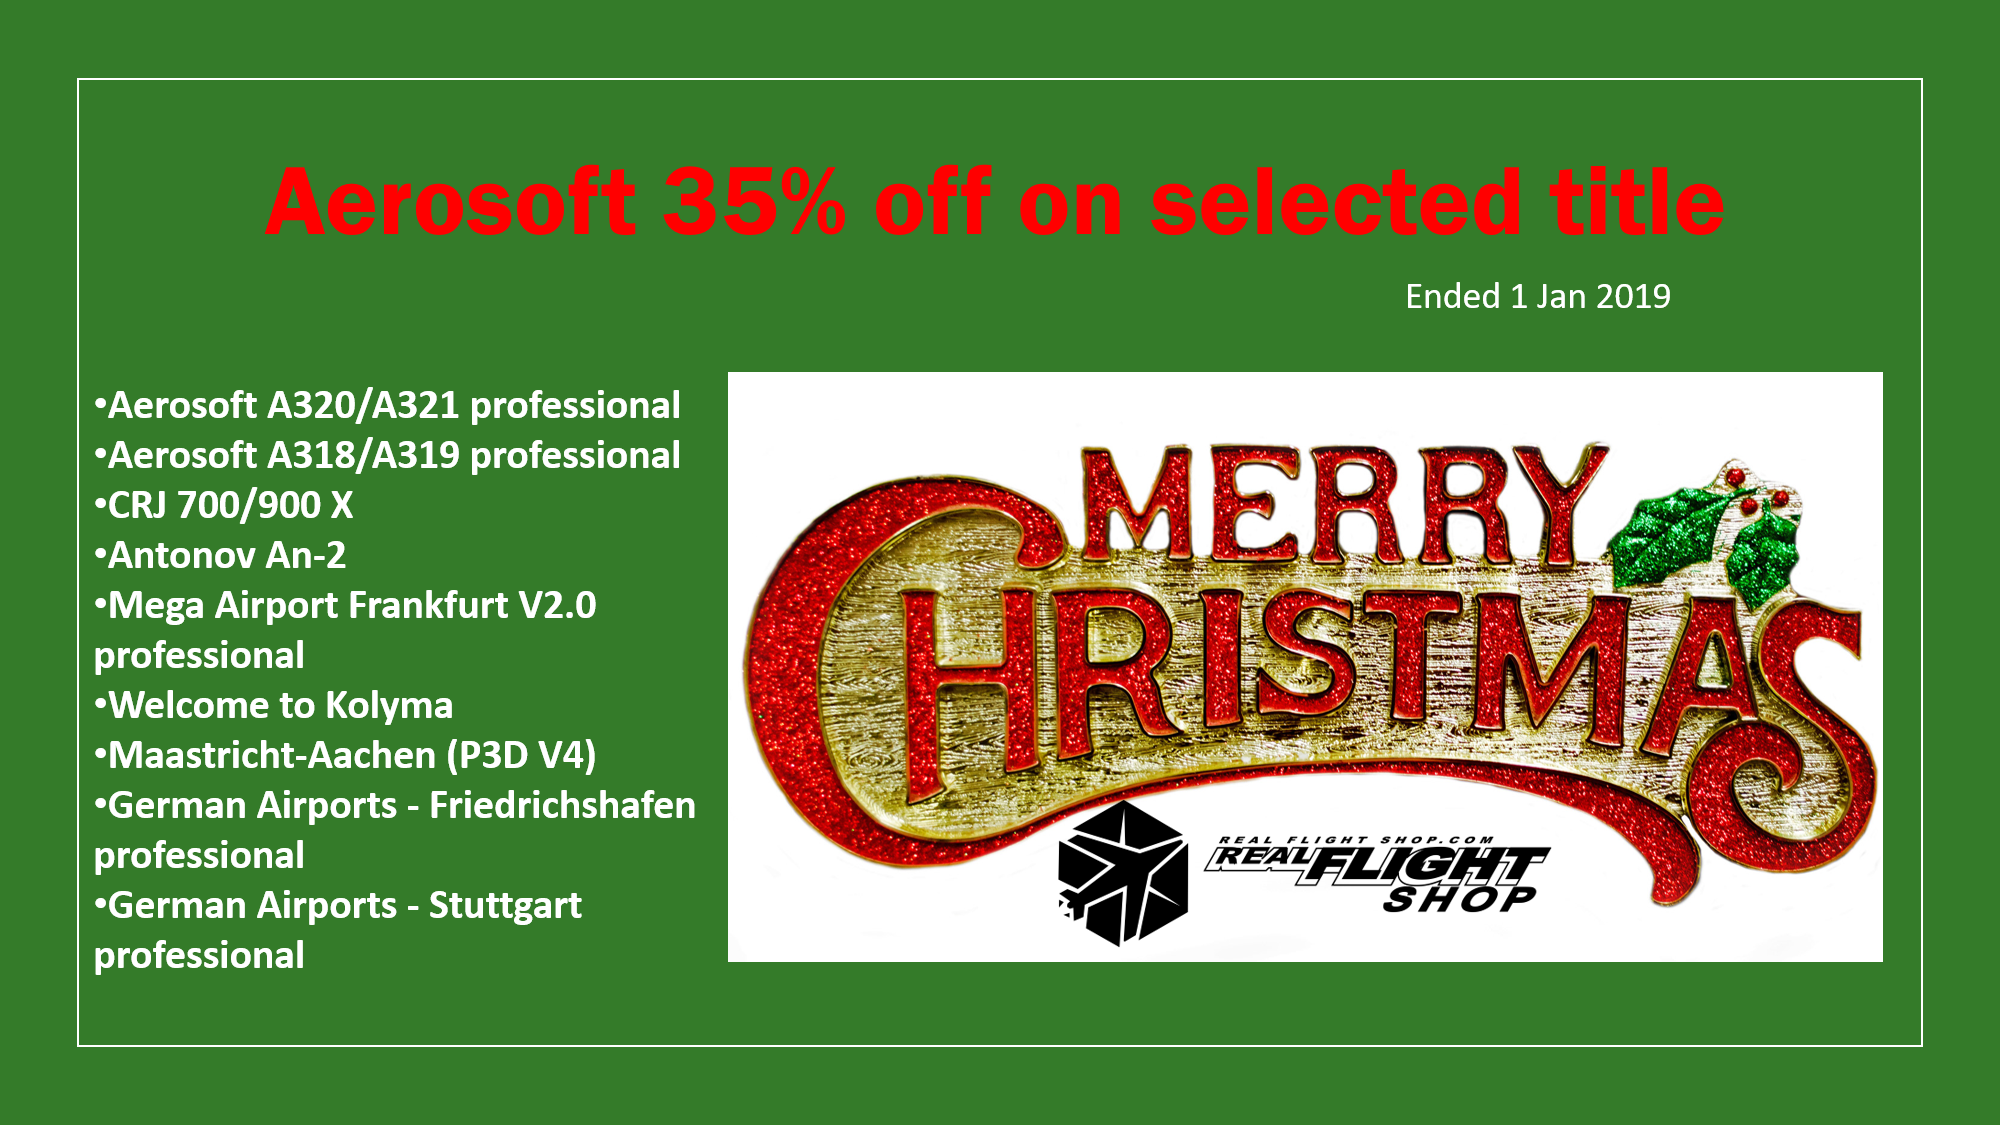 Aerosoft Christmas Sale 35% off on selected title!